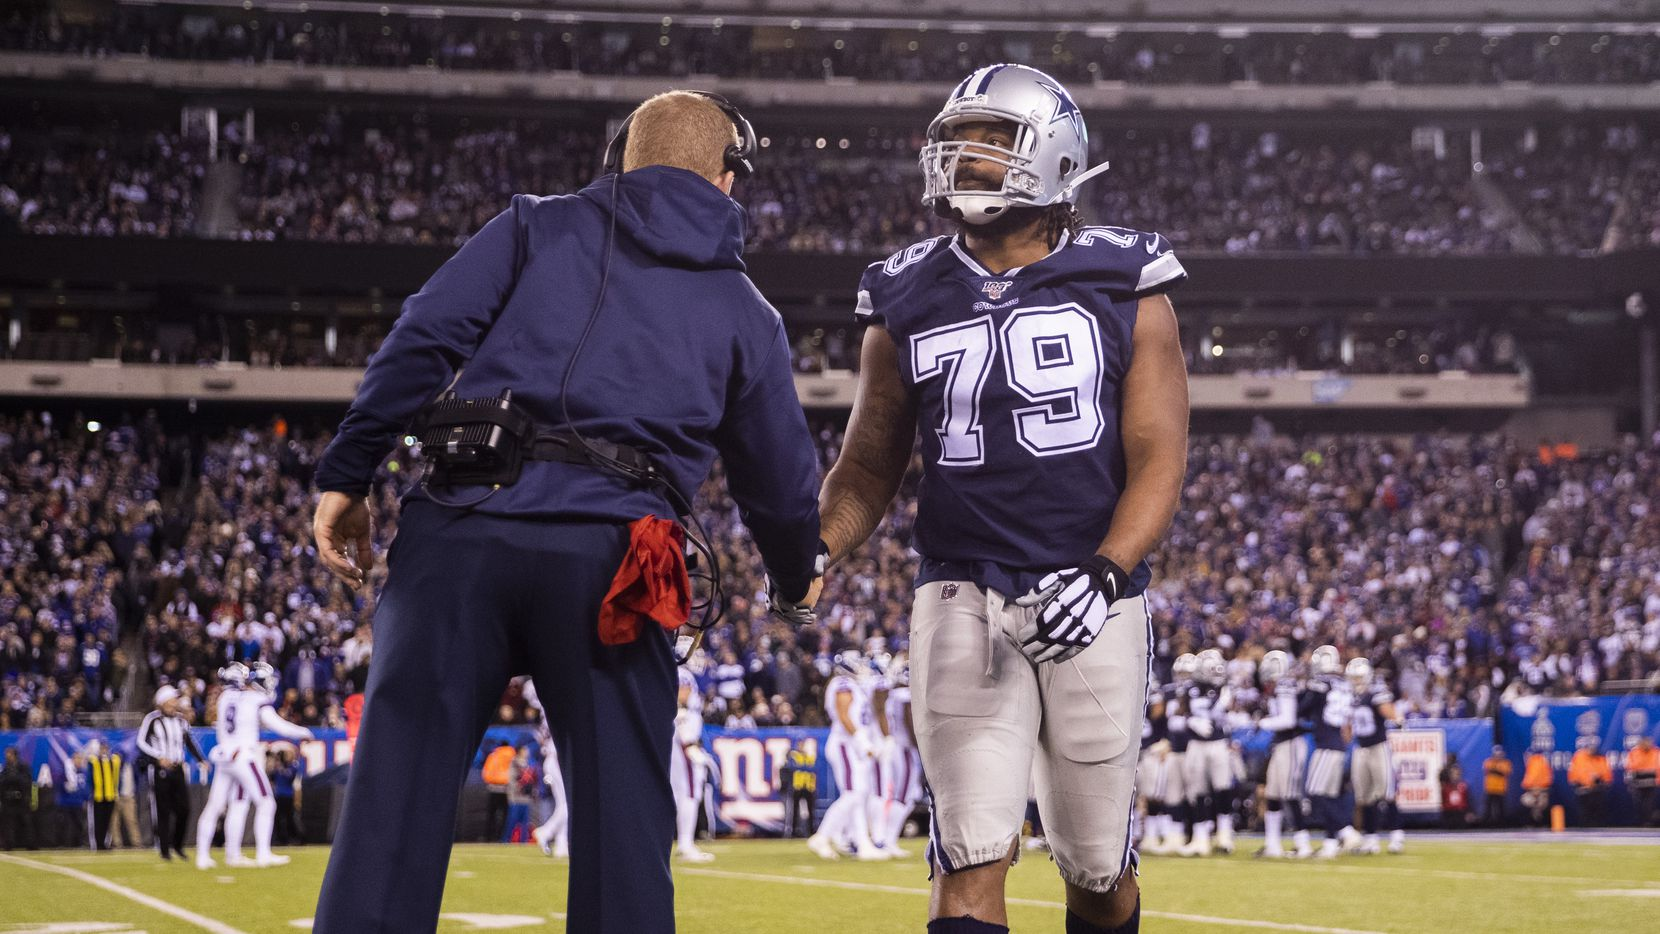 Dallas Cowboys defensive end Michael Bennett (79) gets a high five from Dallas Cowboys head coach Jason Garrett as he walks off the field during the third quarter of an NFL game between the Dallas Cowboys and the New York Giants on Monday, November 4, 2019 at MetLife Stadium in East Rutherford, New Jersey.